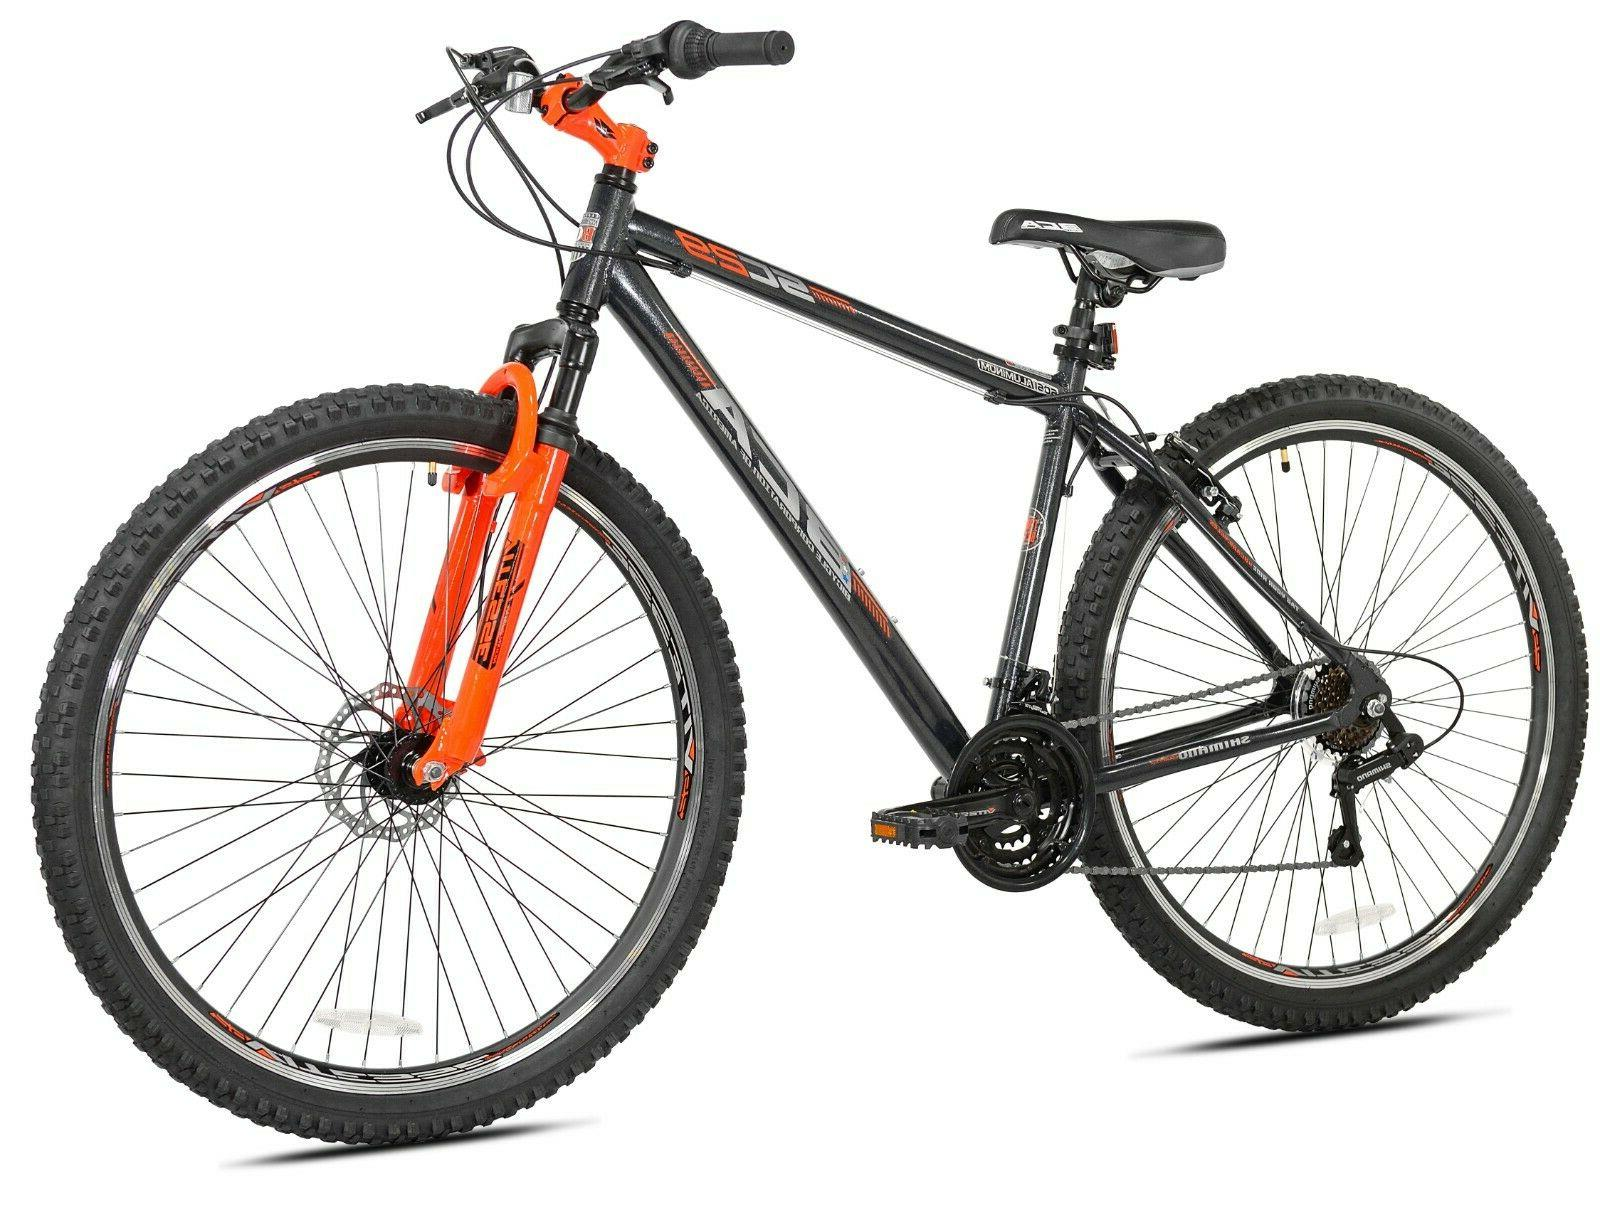 29-Inch Wheel Mountain Bicycle Outdoor Sports